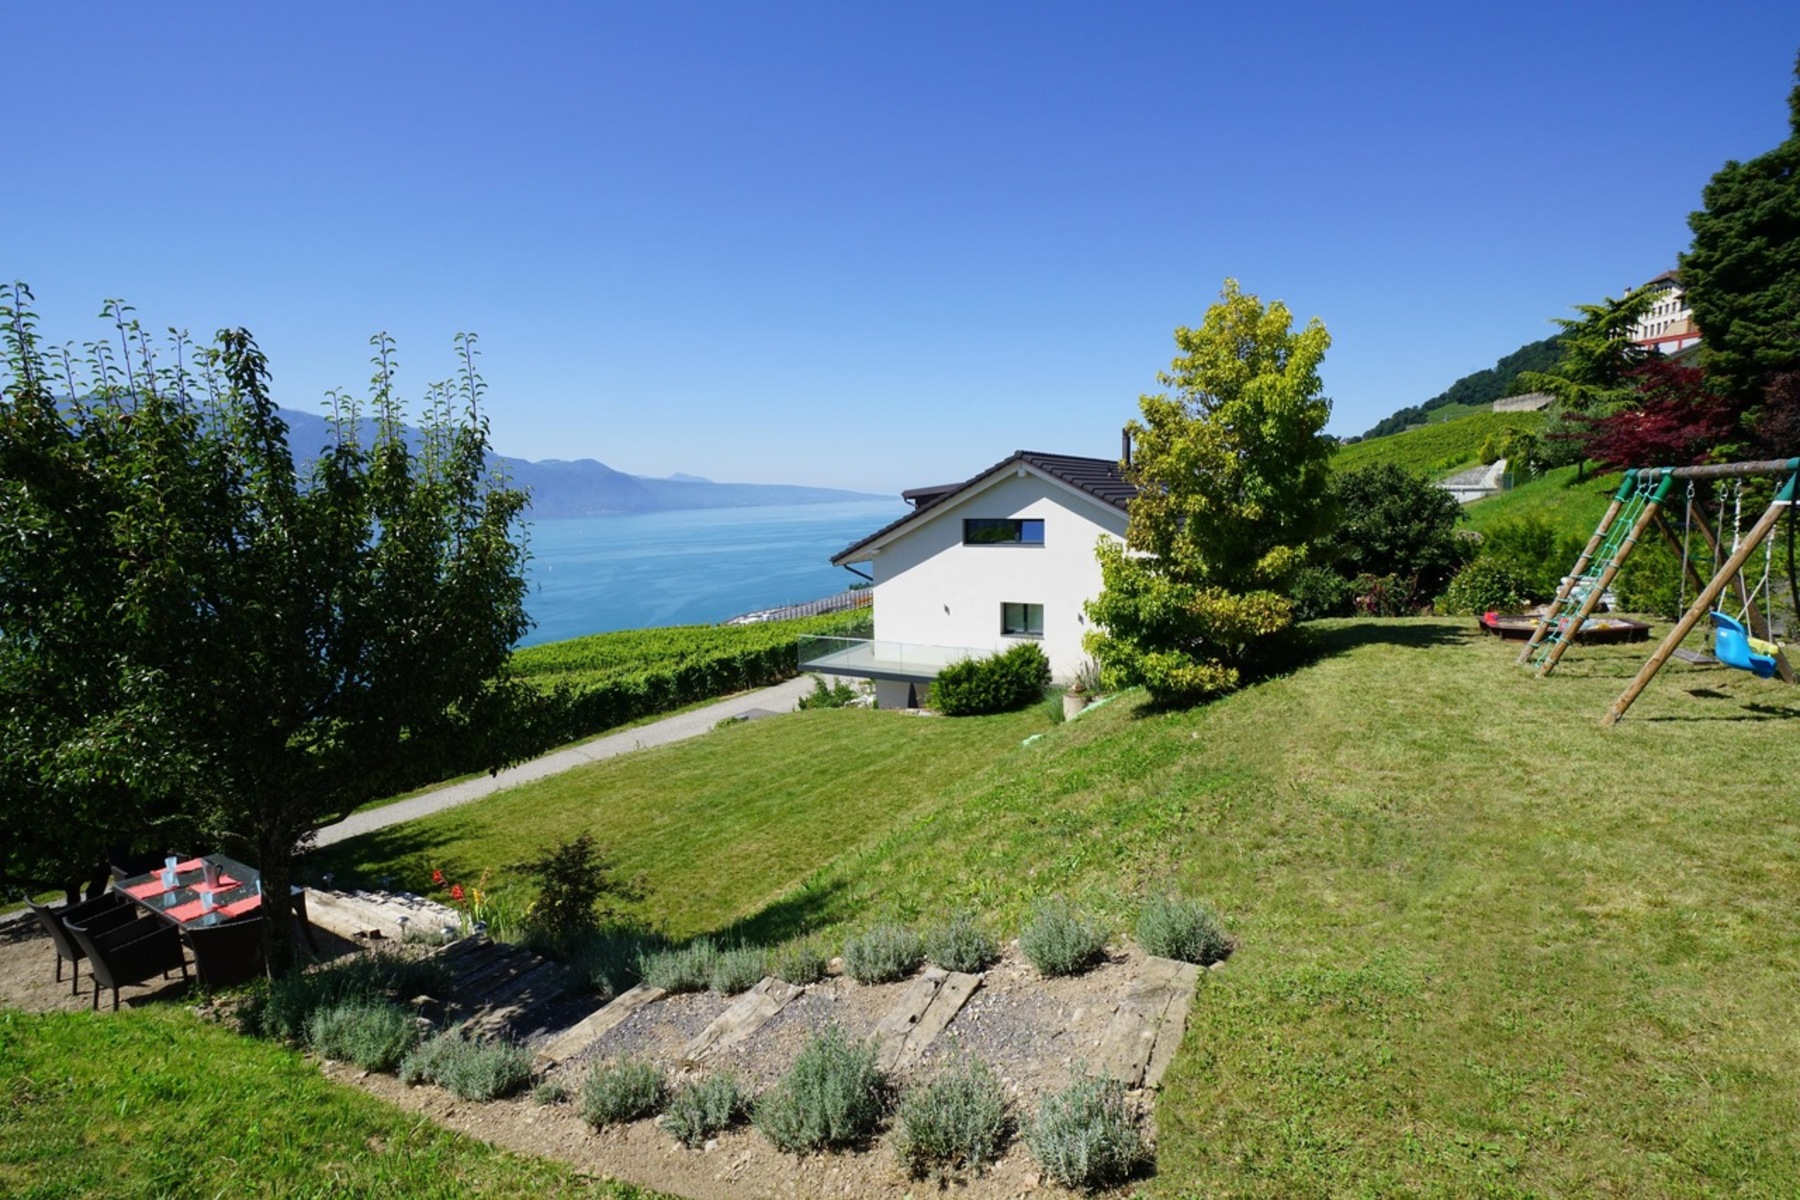 Moradia para Venda às Contemporary property with 480 m² of living space and unobstructed lake views Chardonne Chardonne, Vaud, 1803 Suíça